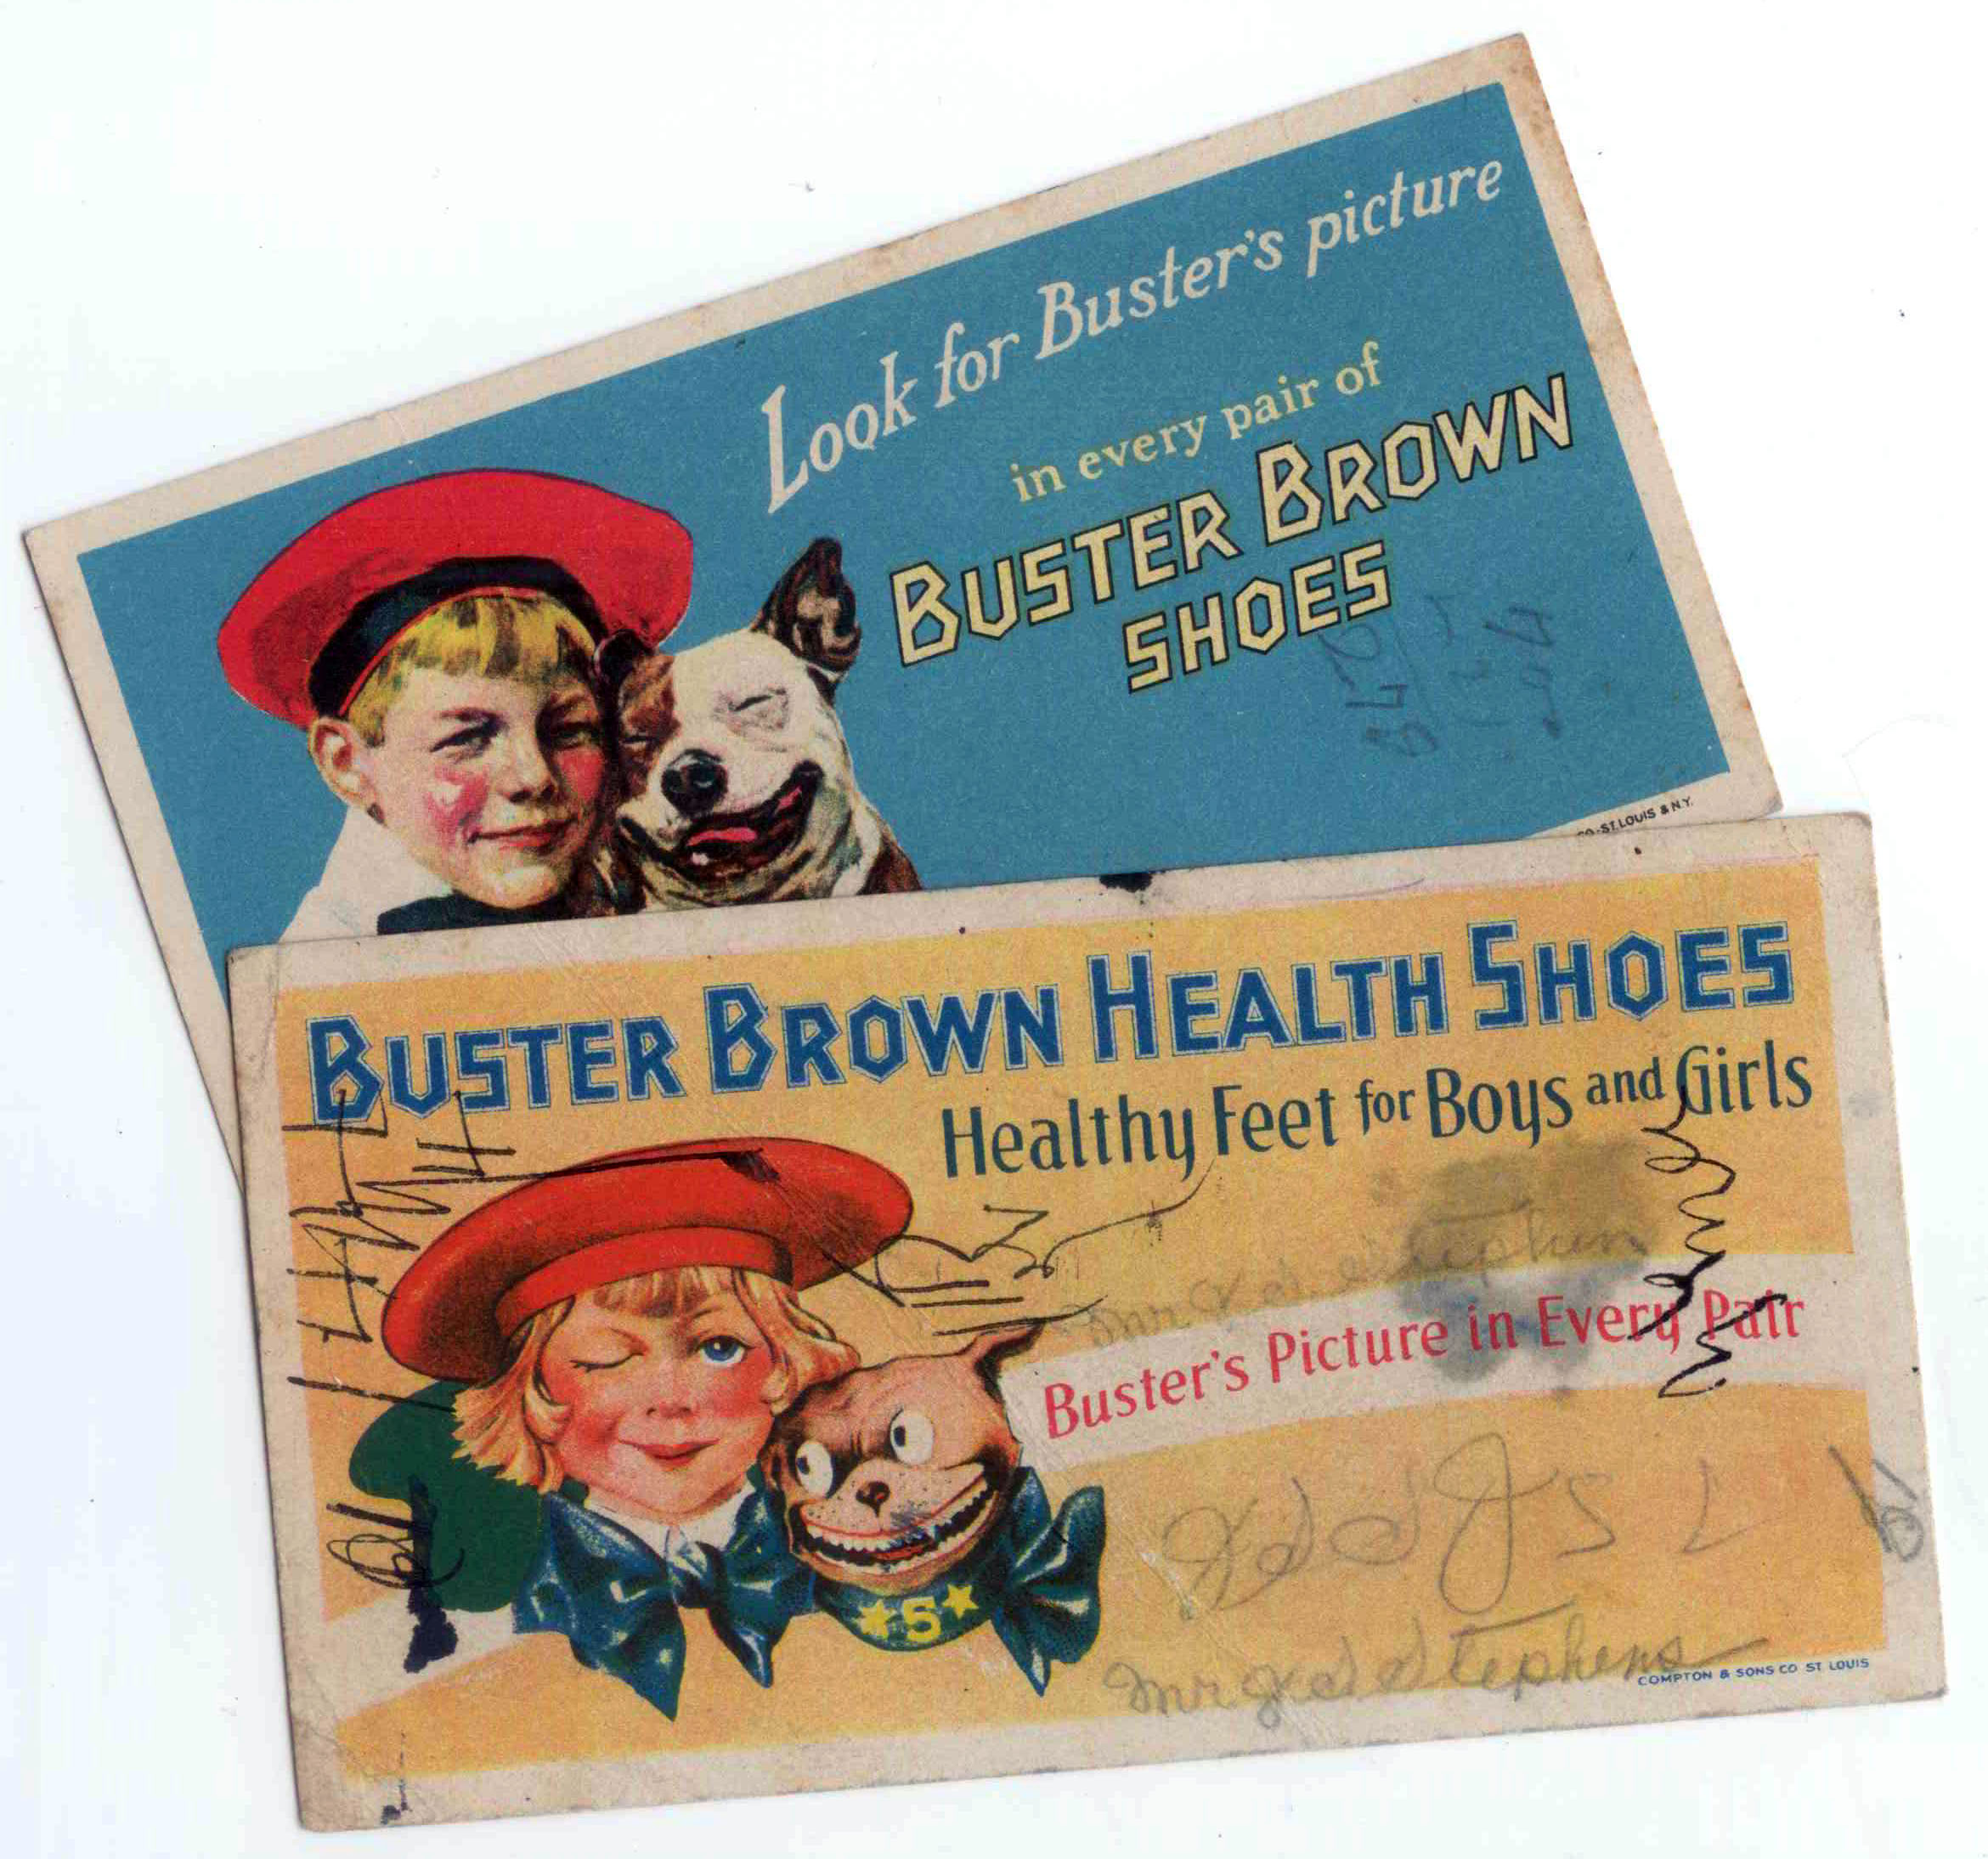 Buster Brown shes